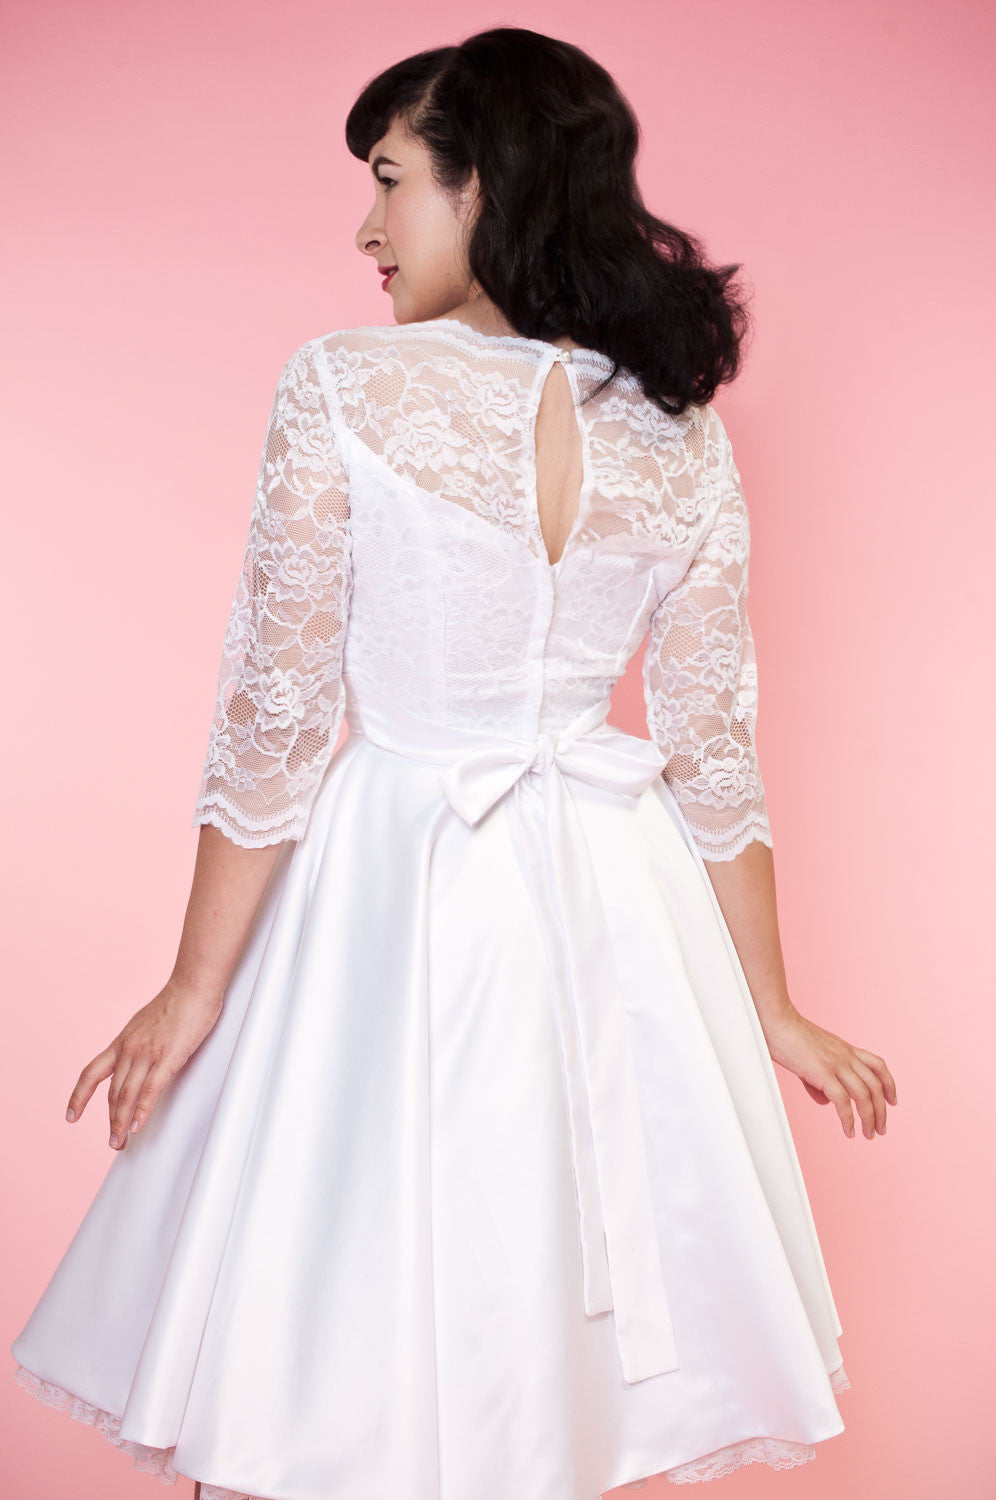 BP Collette Dress - White Lace - Heart of Haute  - 5